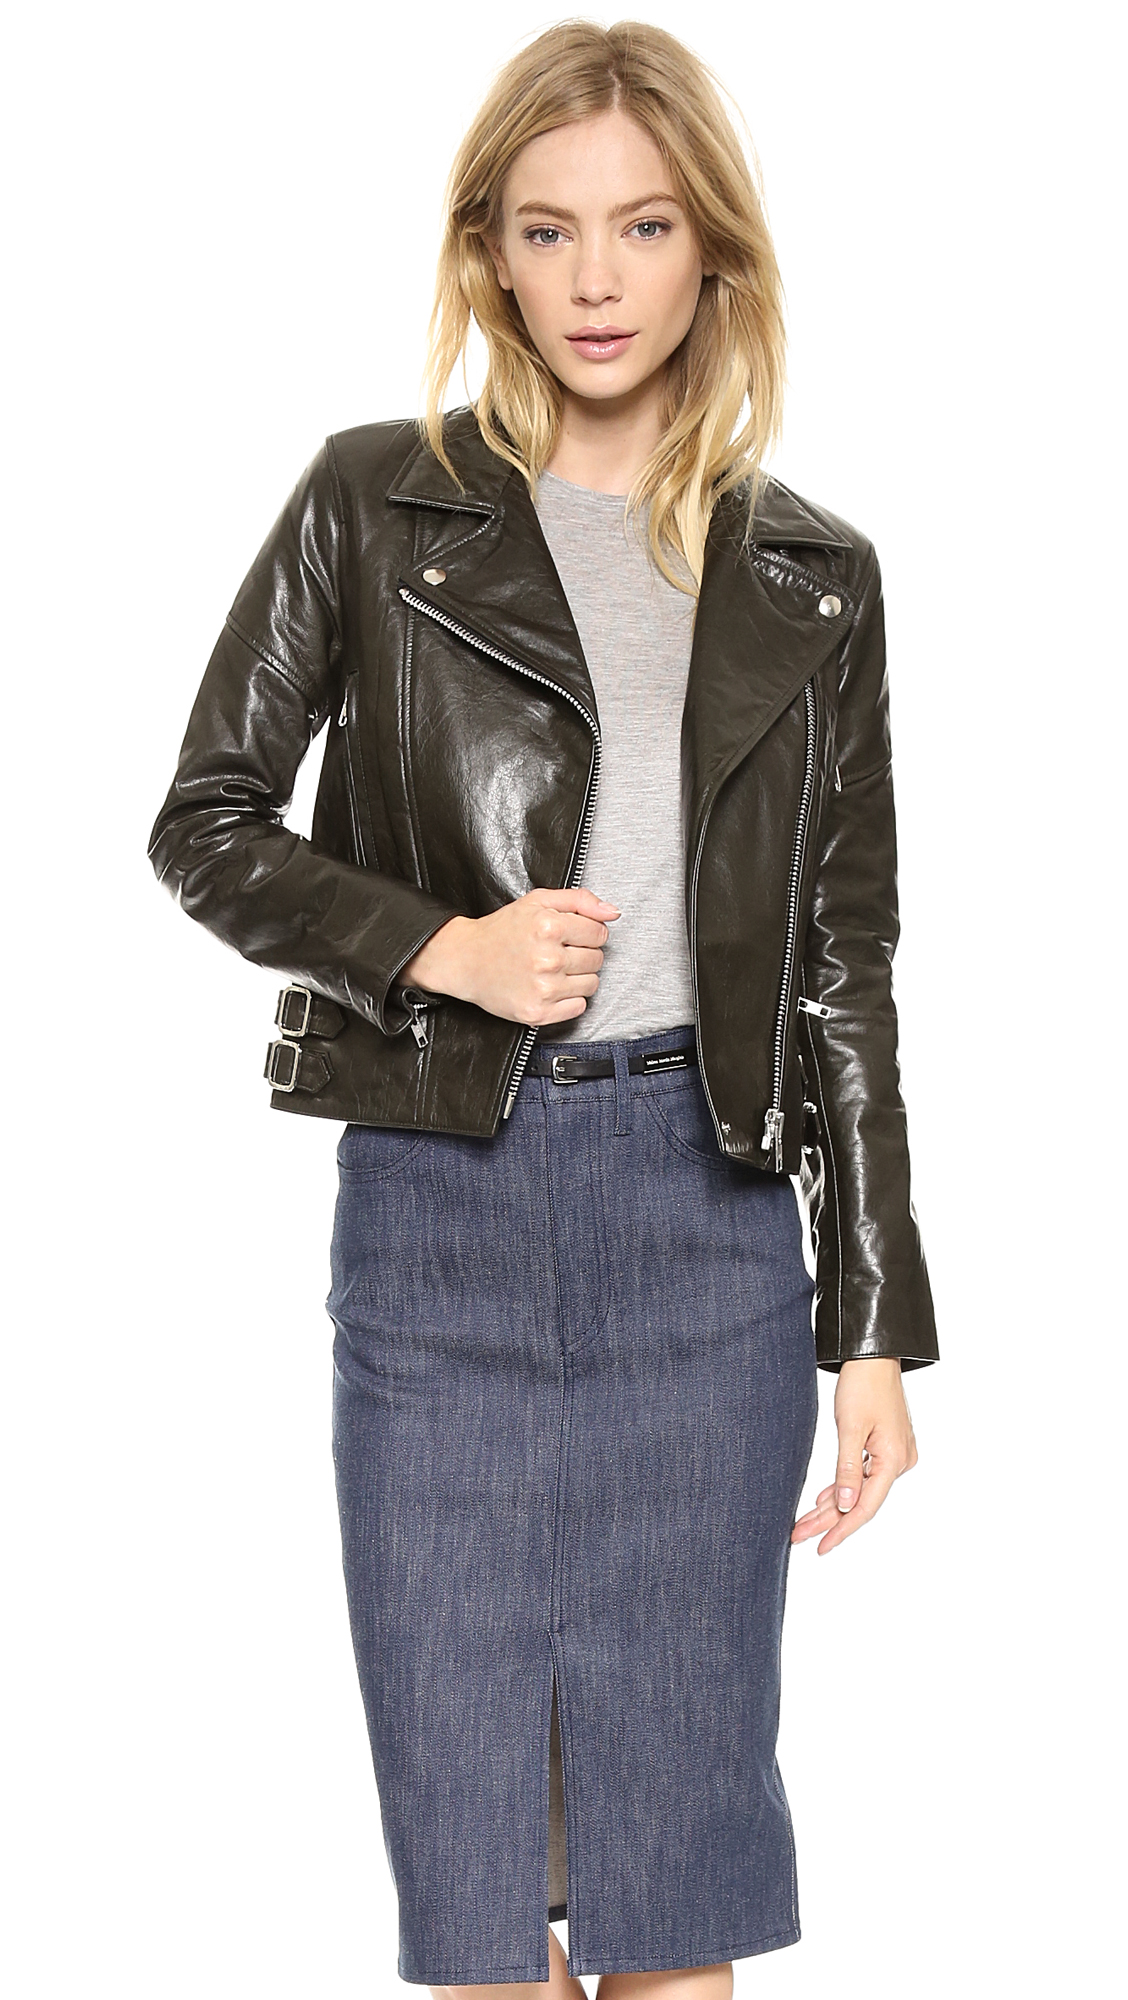 Leather jacket victoria - Victoria Beckham Joan Leather Biker Jacket 15 Off First App Purchase With Code 15foryou